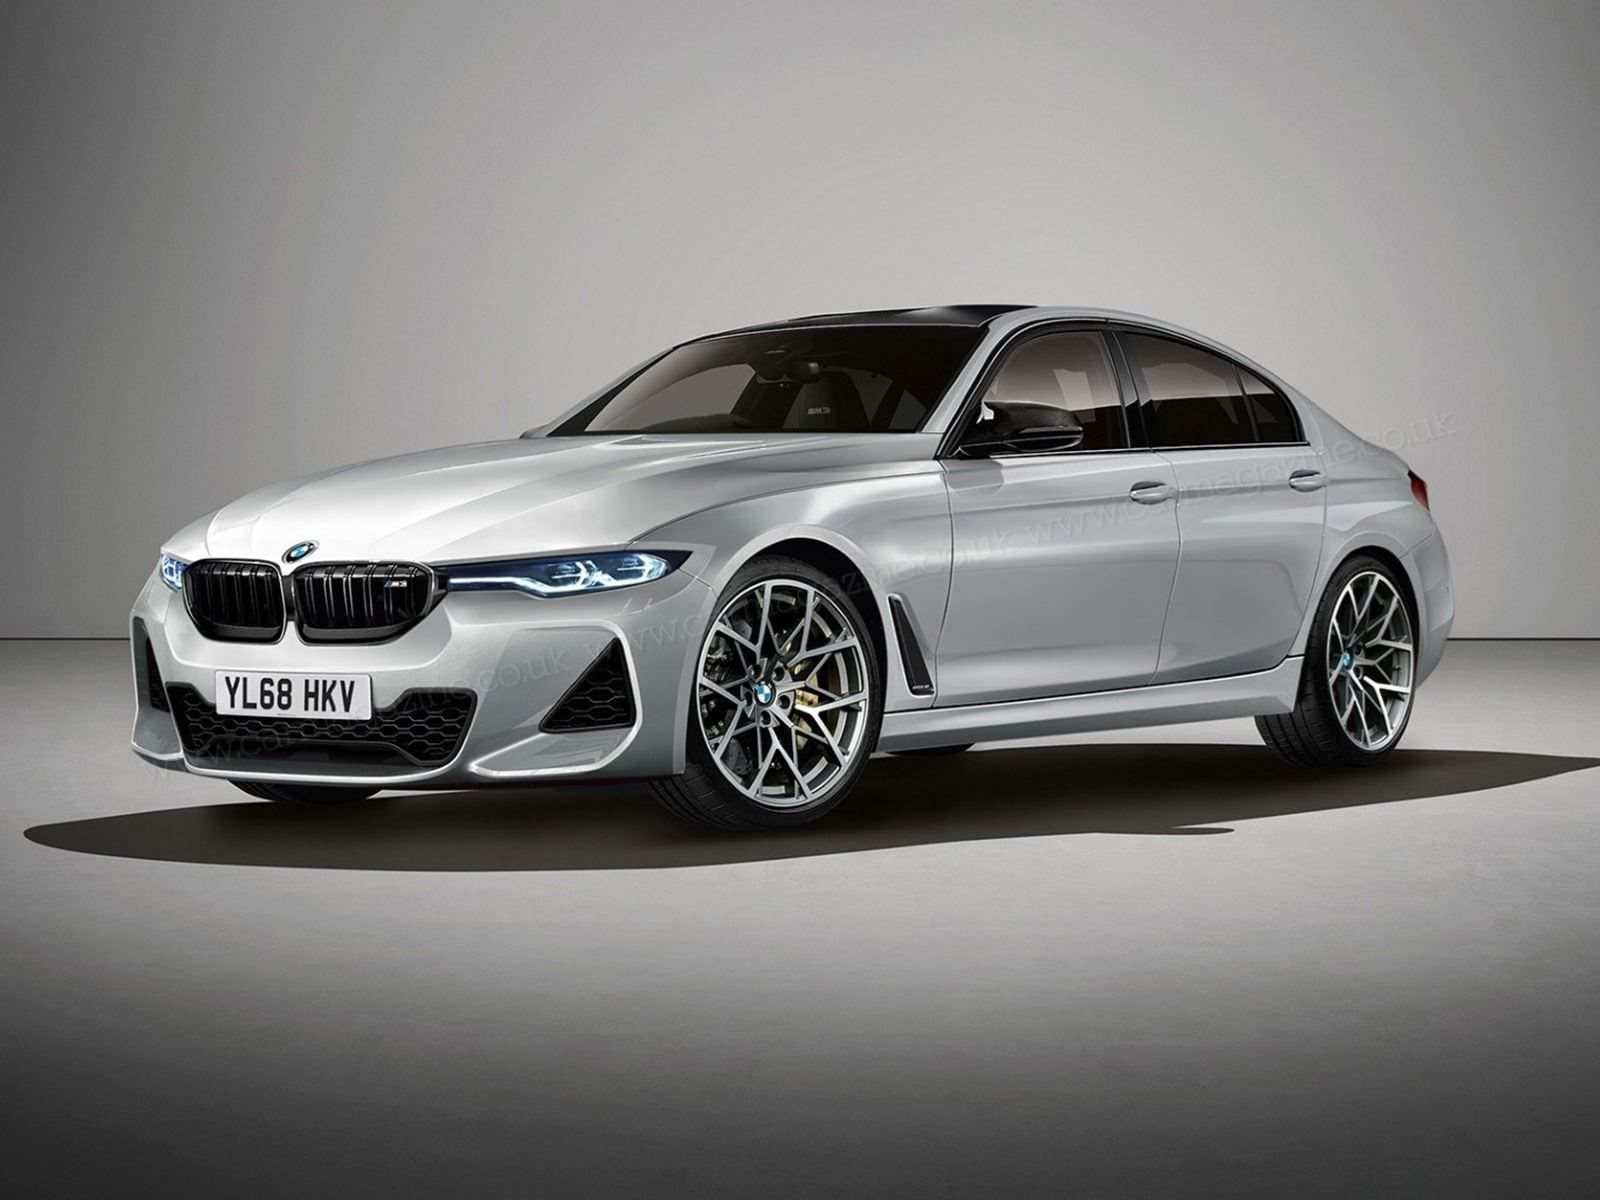 64 Best Review 2019 Bmw Ratings for 2019 Bmw